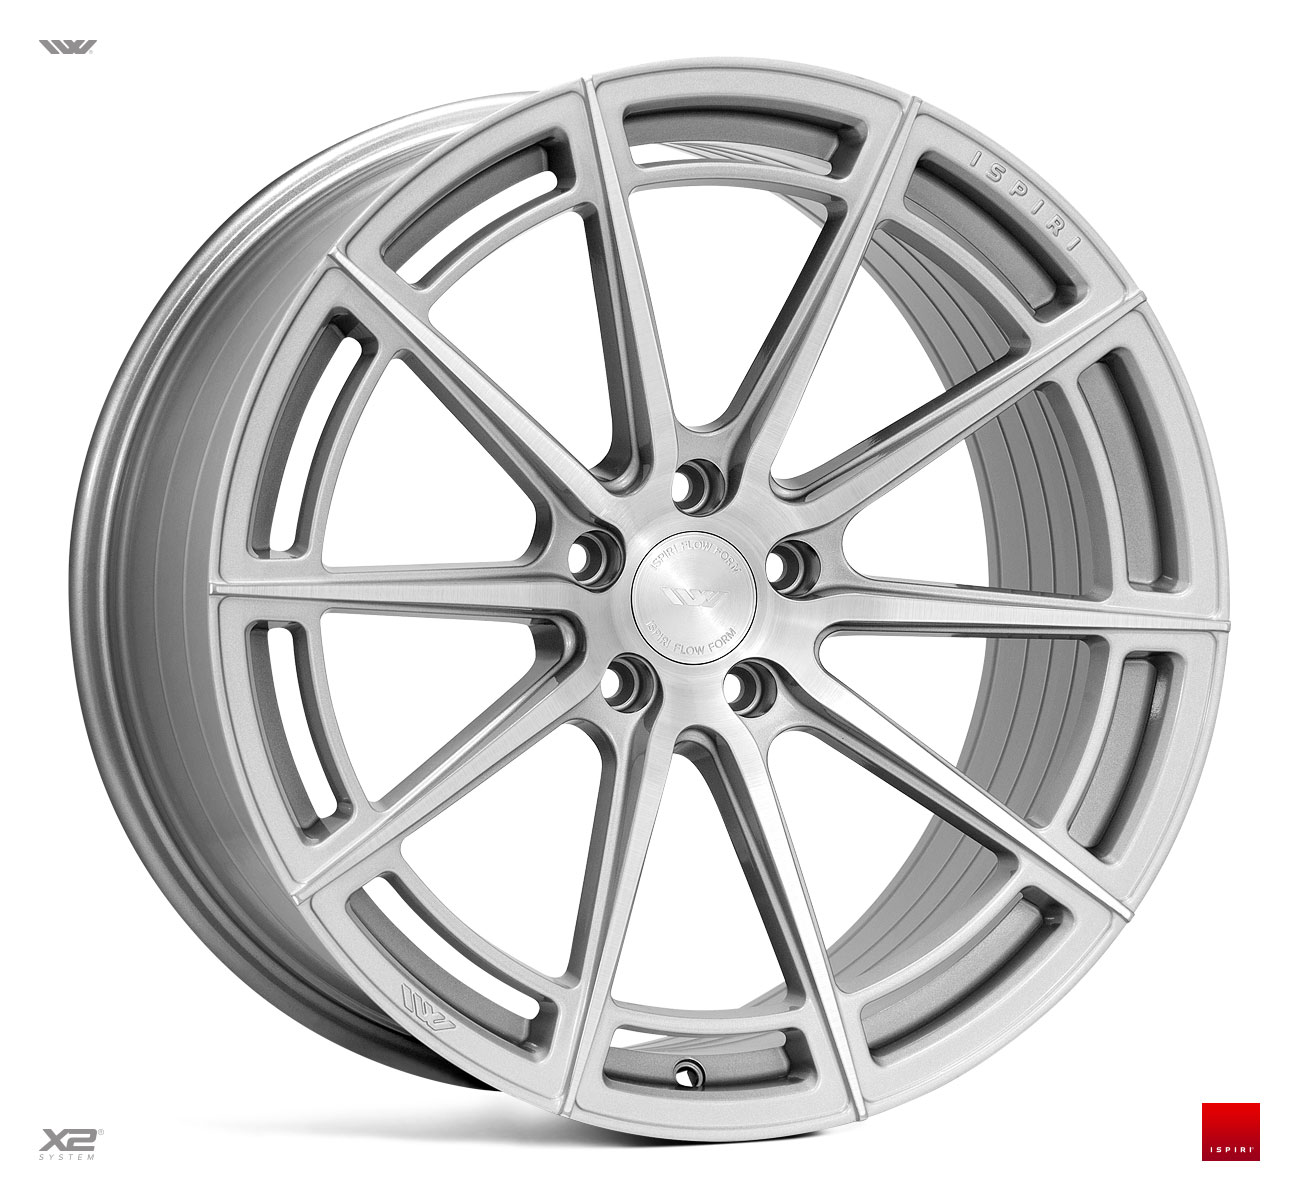 "NEW 20"" ISPIRI FFR2 MULTI-SPOKE ALLOY WHEELS IN PURE SILVER BRUSHED, WIDER 10"" OR 10.5"" REAR"